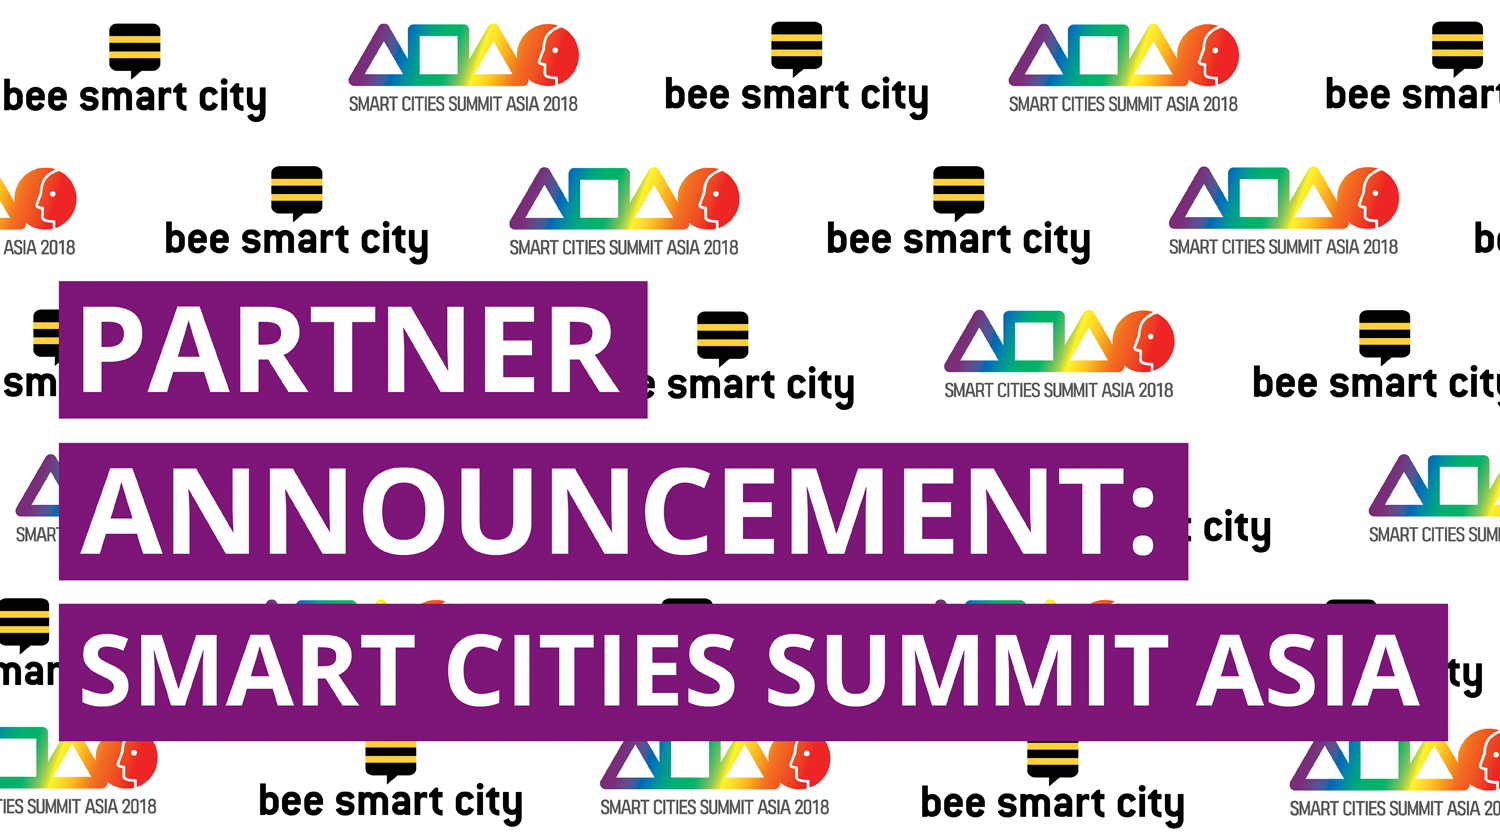 partner-announcement-smart-cities-summit-asia-blog